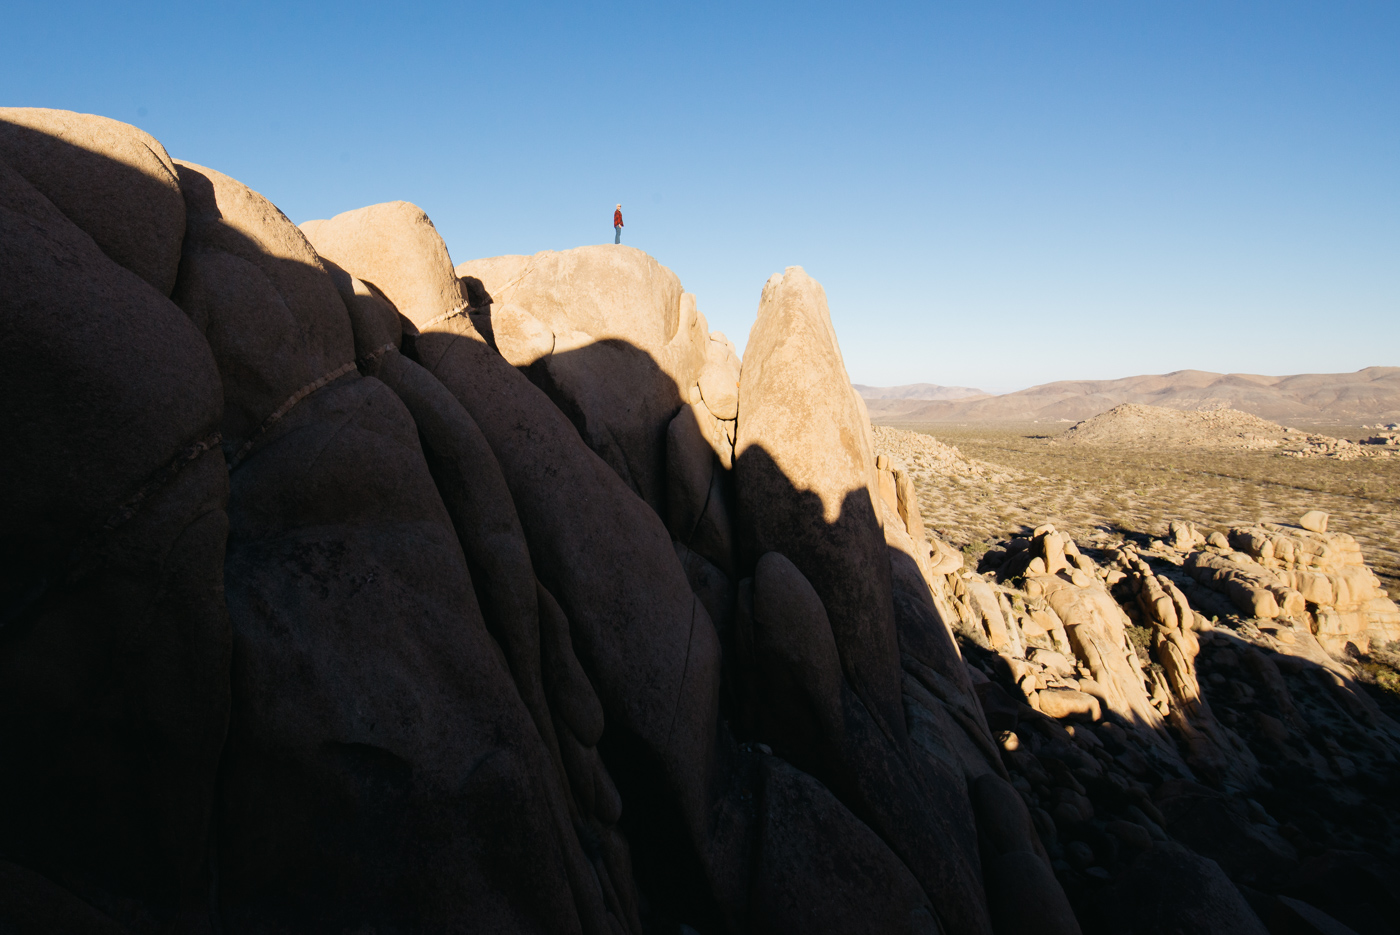 joshua tree man standing on cliff winter camp cold pawlowski